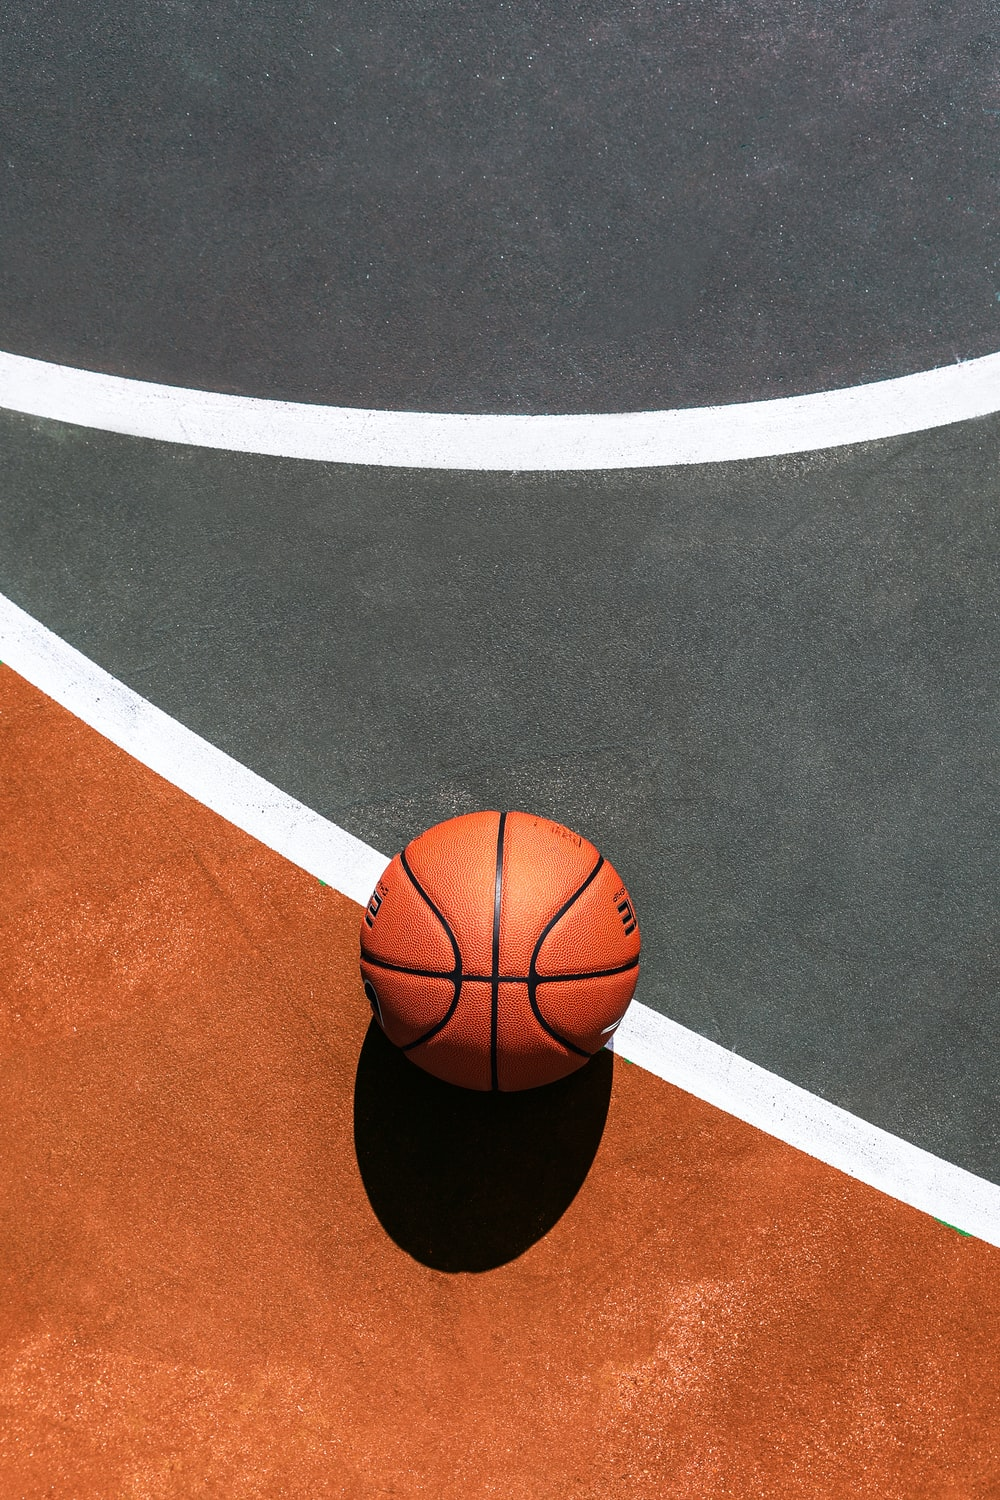 sports pictures download free images on unsplash